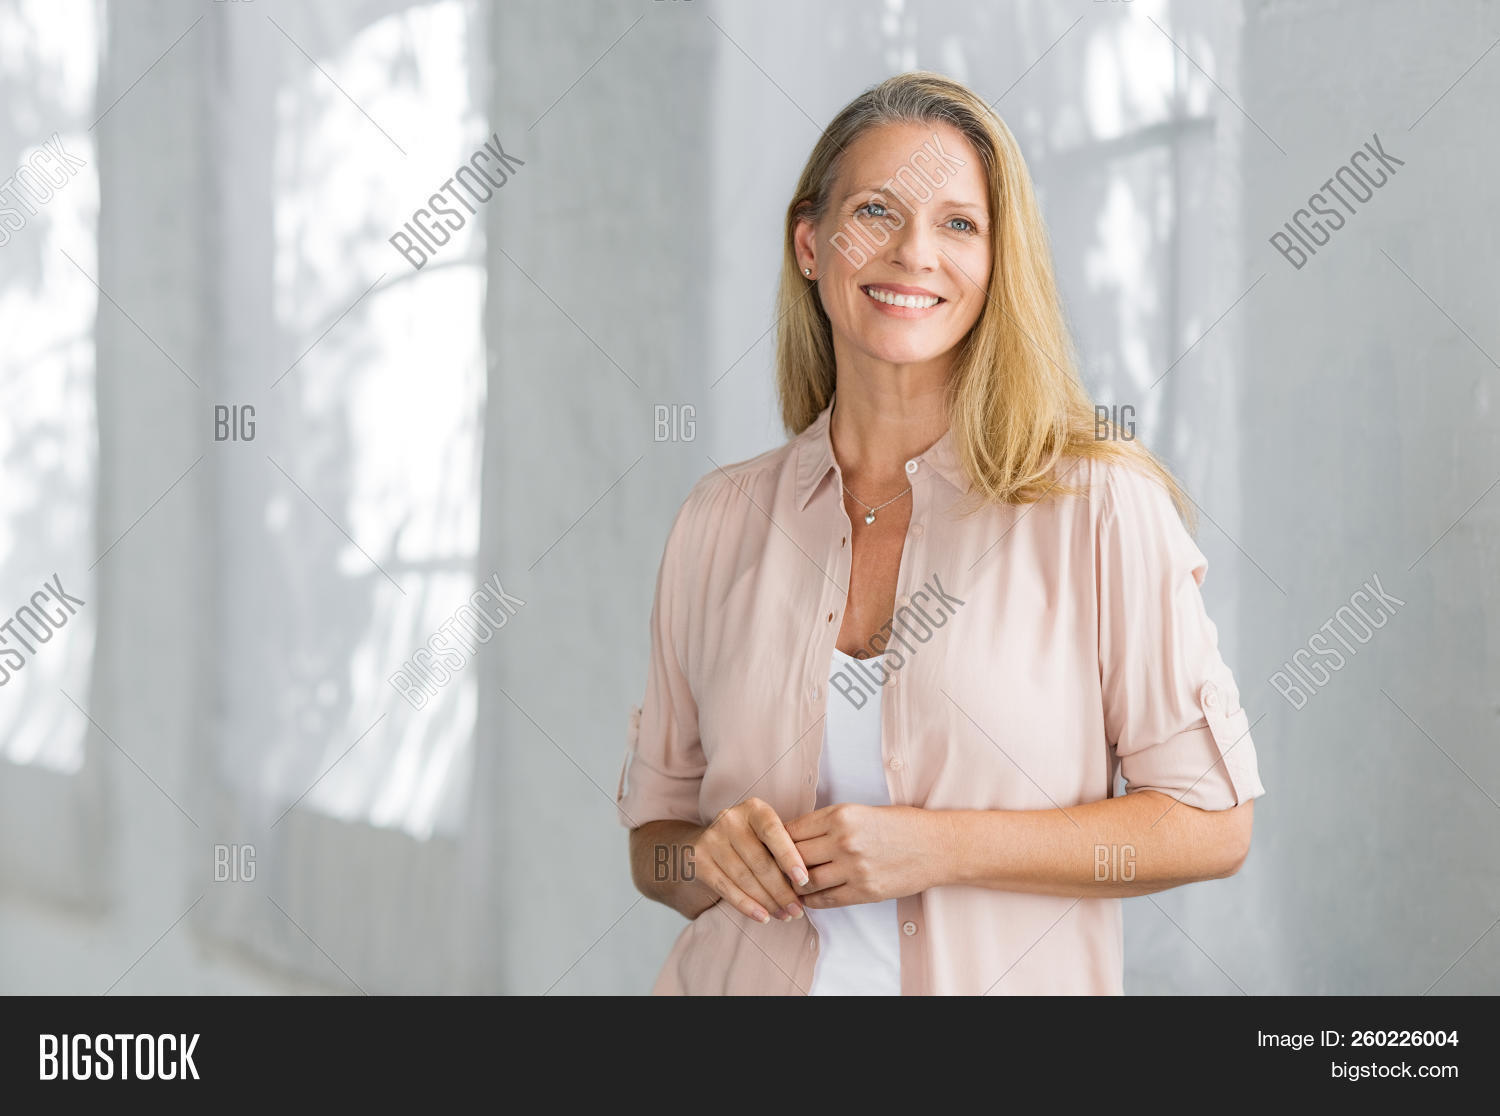 aging,aspiration,attractive,beautiful,beautiful woman,beauty,blond,blonde hair,carefree,casual,caucasian,cheerful,confident,content,copy space,day dreaming,daydream,daydreaming,elderly,future,happy,healthy,home,hope,indoor,lady,lifestyle,looking away,mature,matured,middle aged woman,pensioner,people,planning,positive,relax,retired,retirement,senior,serene woman,smart casual,smile,standing,successful,thinking,toothy smile,vision,woman